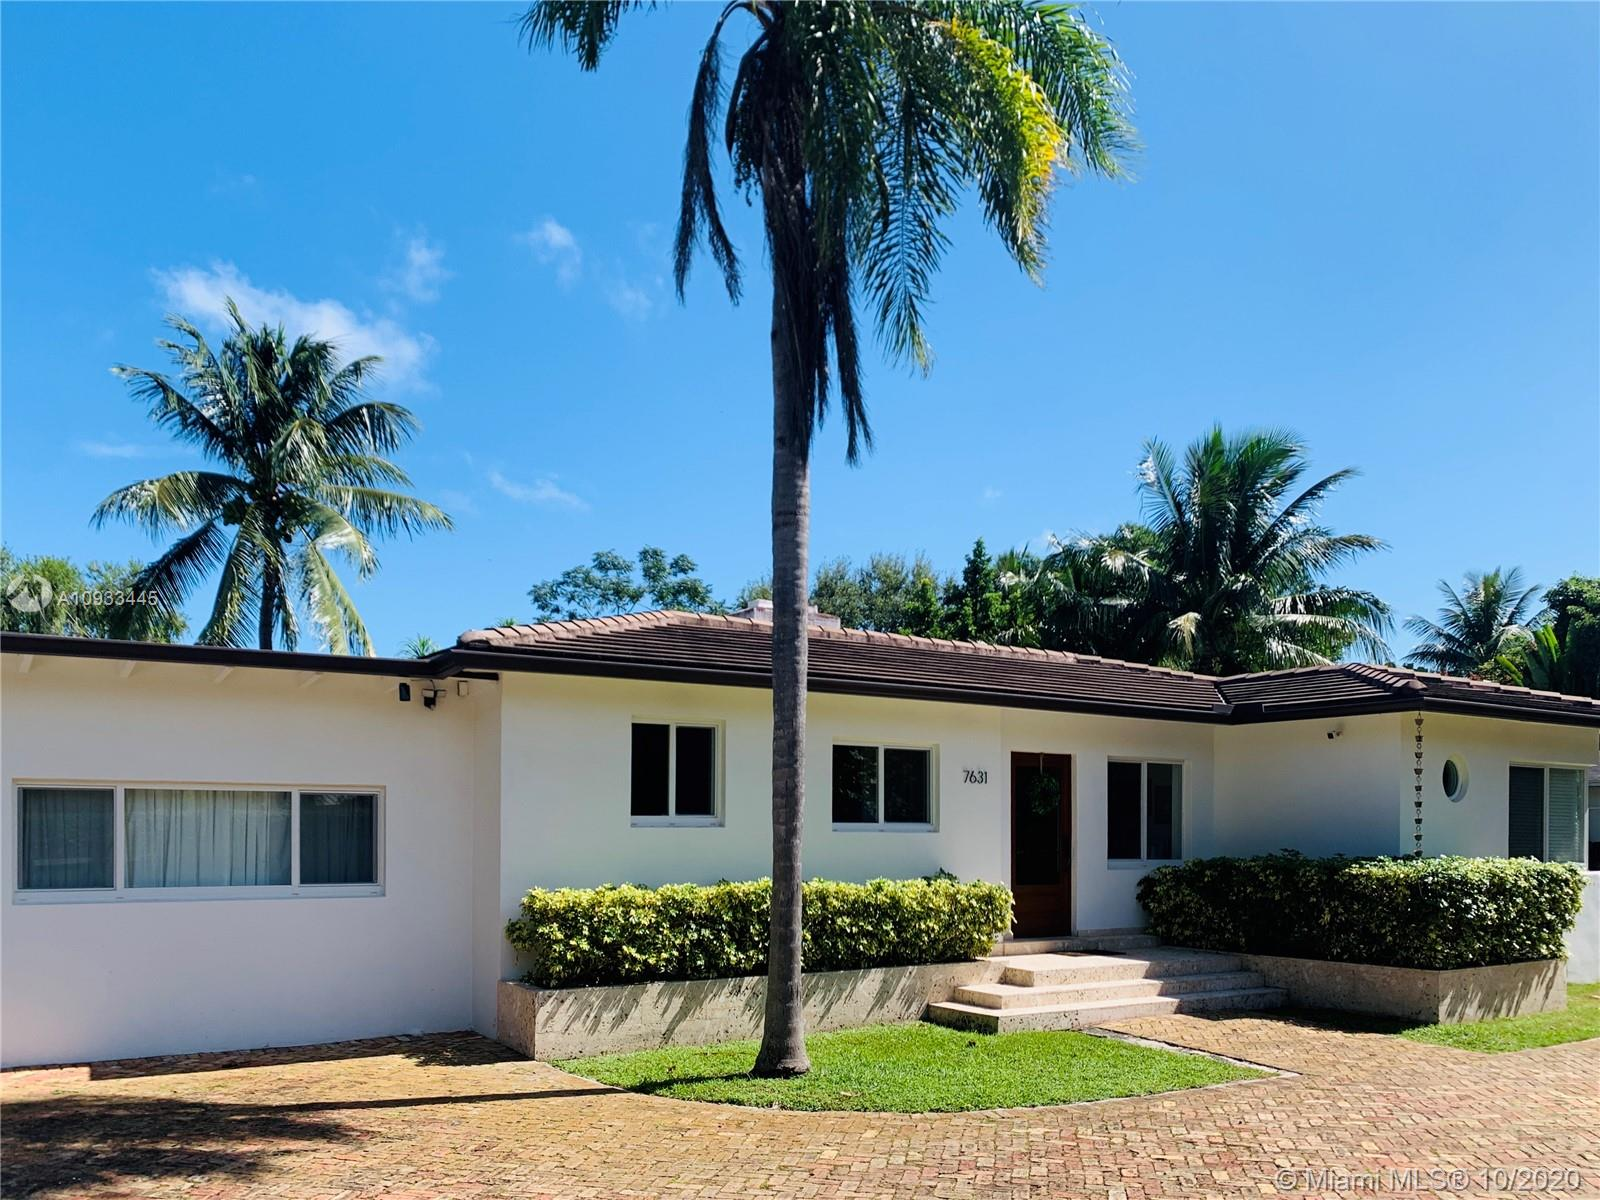 Centrally located, updated and remodeled 3/2/1 split plan, single family pool home with detached 1/1 guest house with separate meter. Large lot with open spaces and outside entertaining area. Great family home within the City f South Miami. Minutes from downtown South Miami and Dadeland area. New roof, kitchen, impact windows and doors.